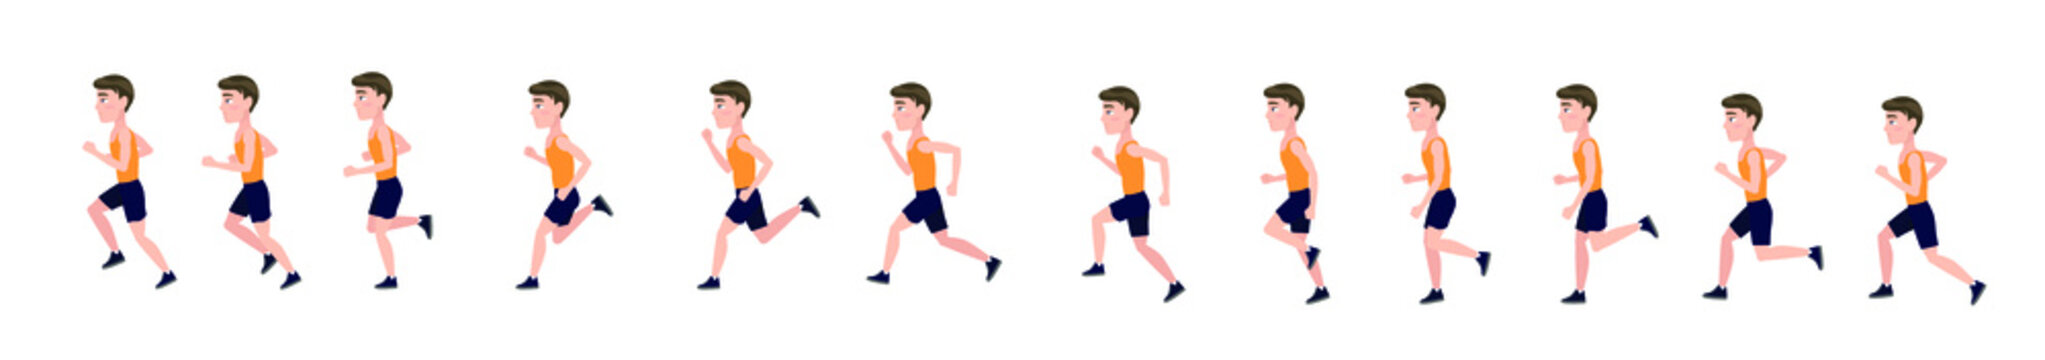 Running man. Cycle of animation for men's running, 2d cartoon character.